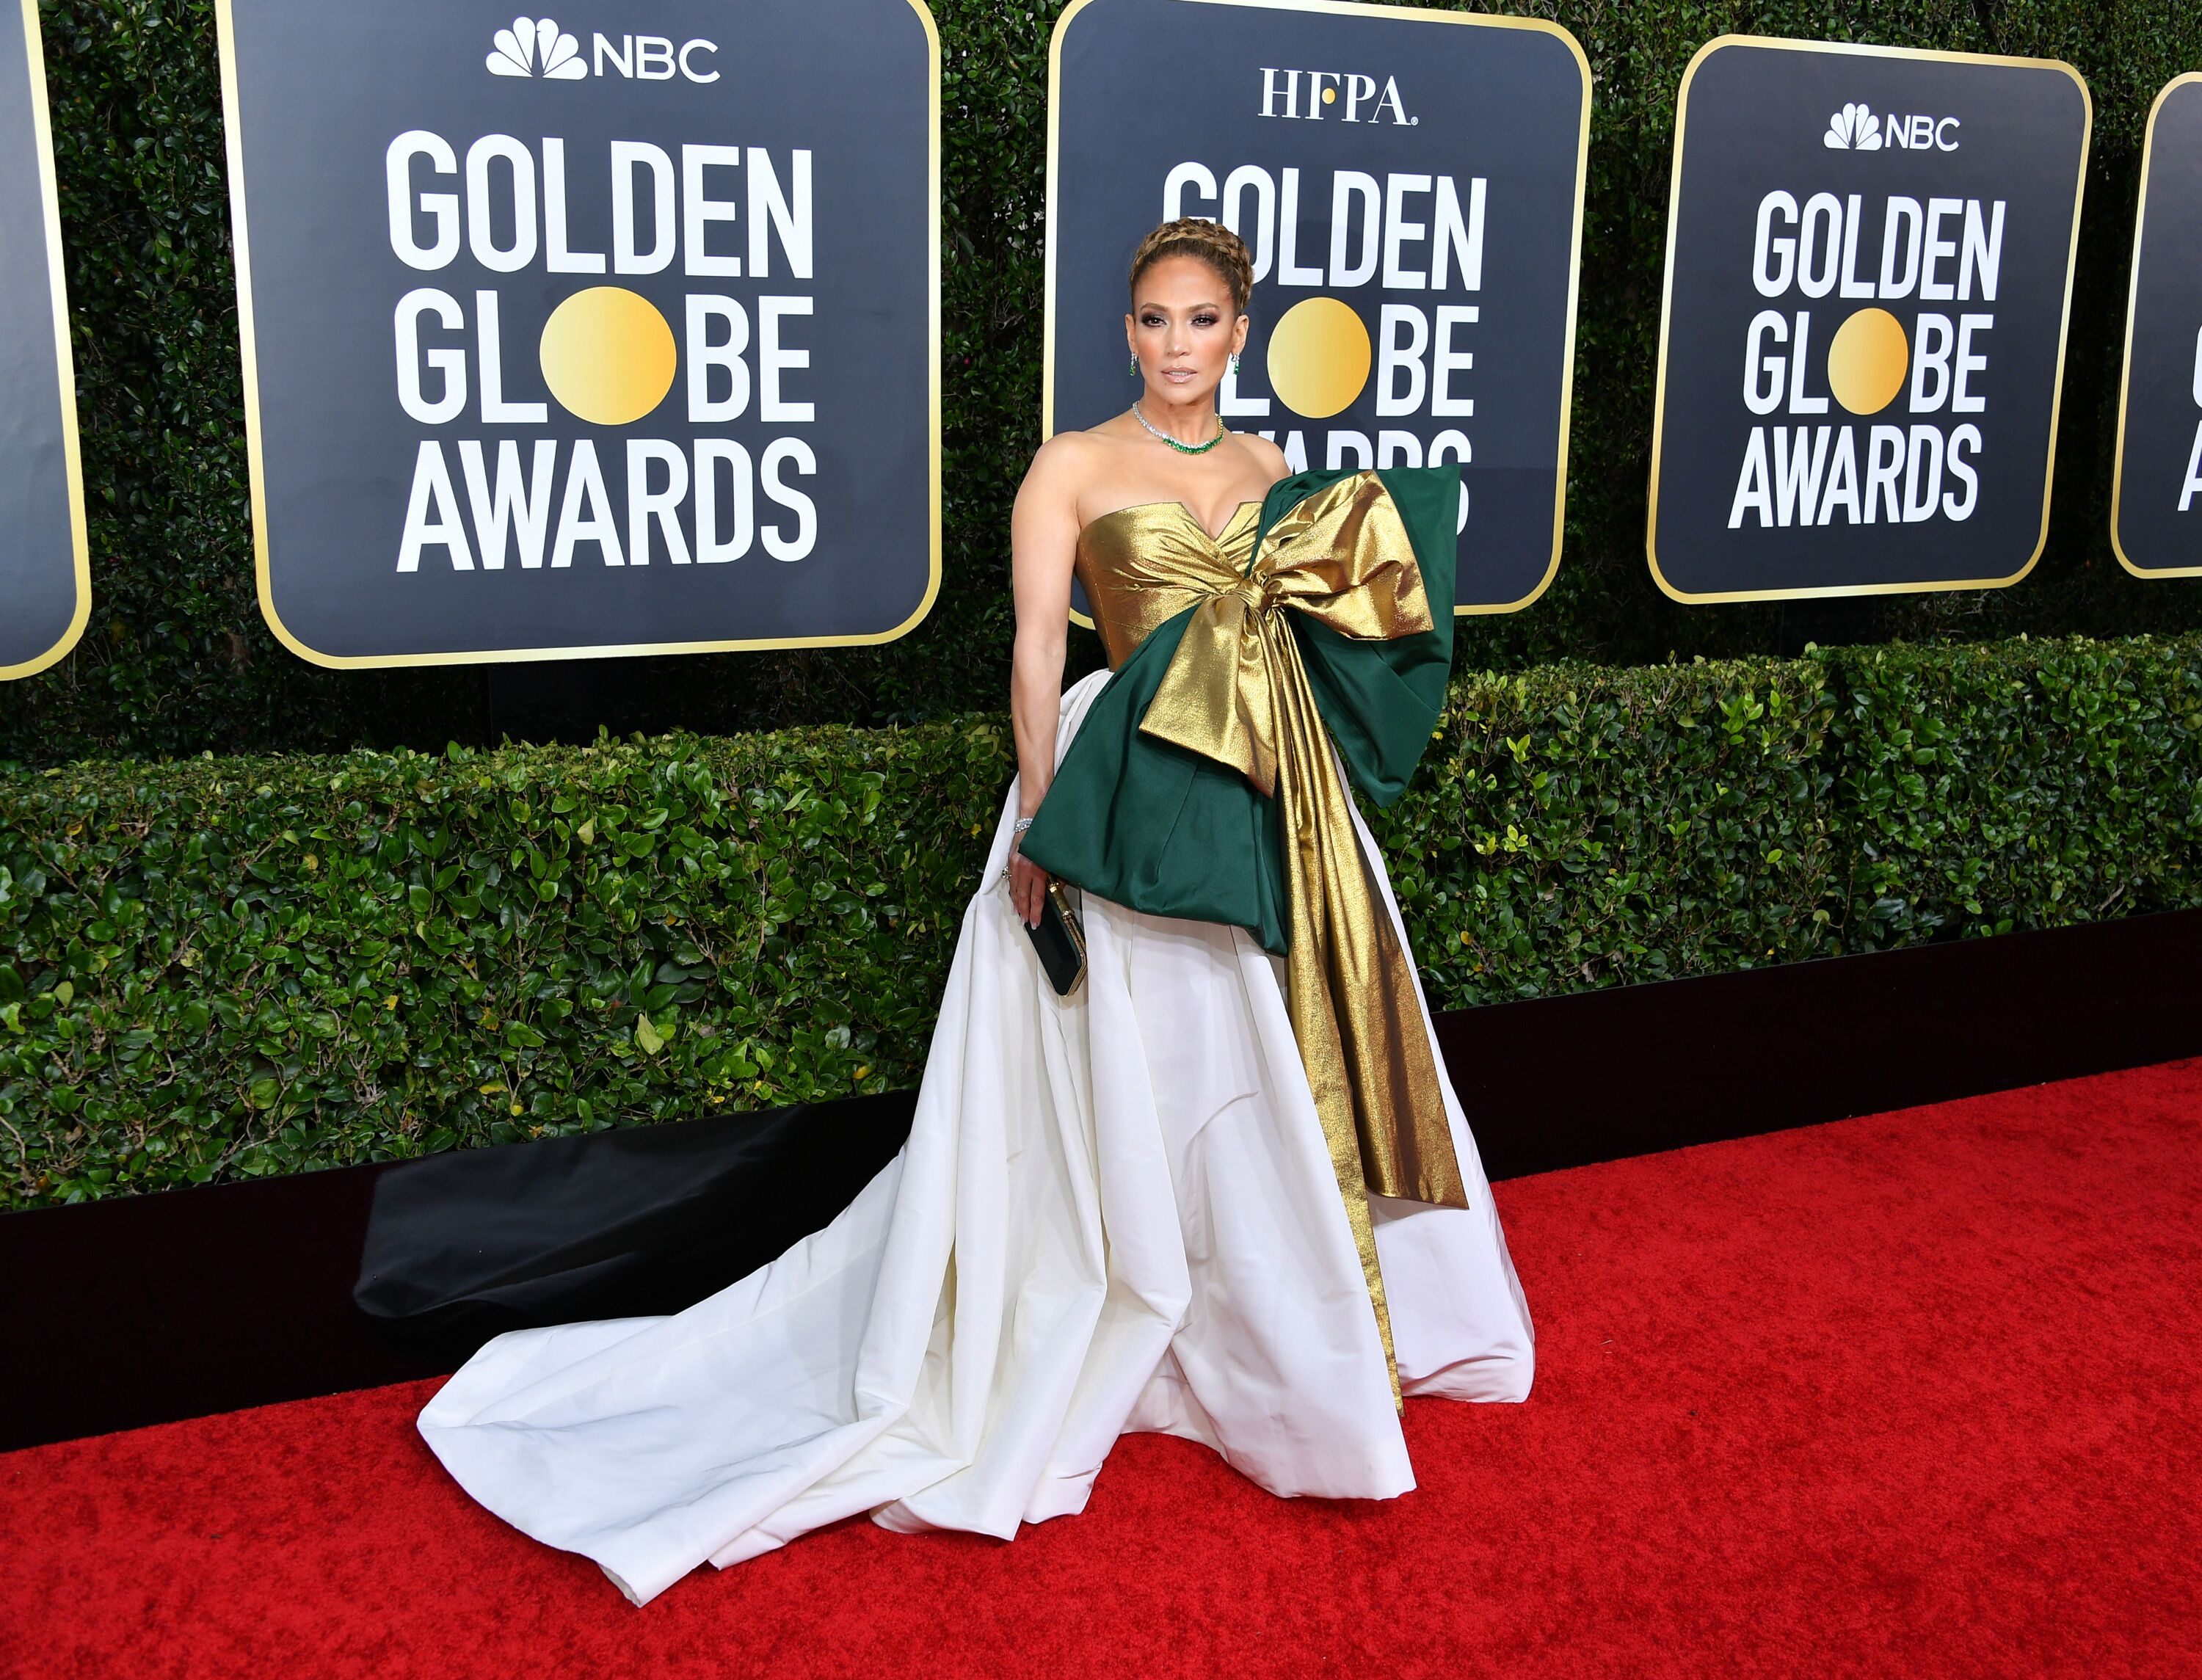 Jennifer Lopez at the 77th Annual Golden Globe Awards on January 05, 2020, in Beverly Hills, California | Photo: Getty Images